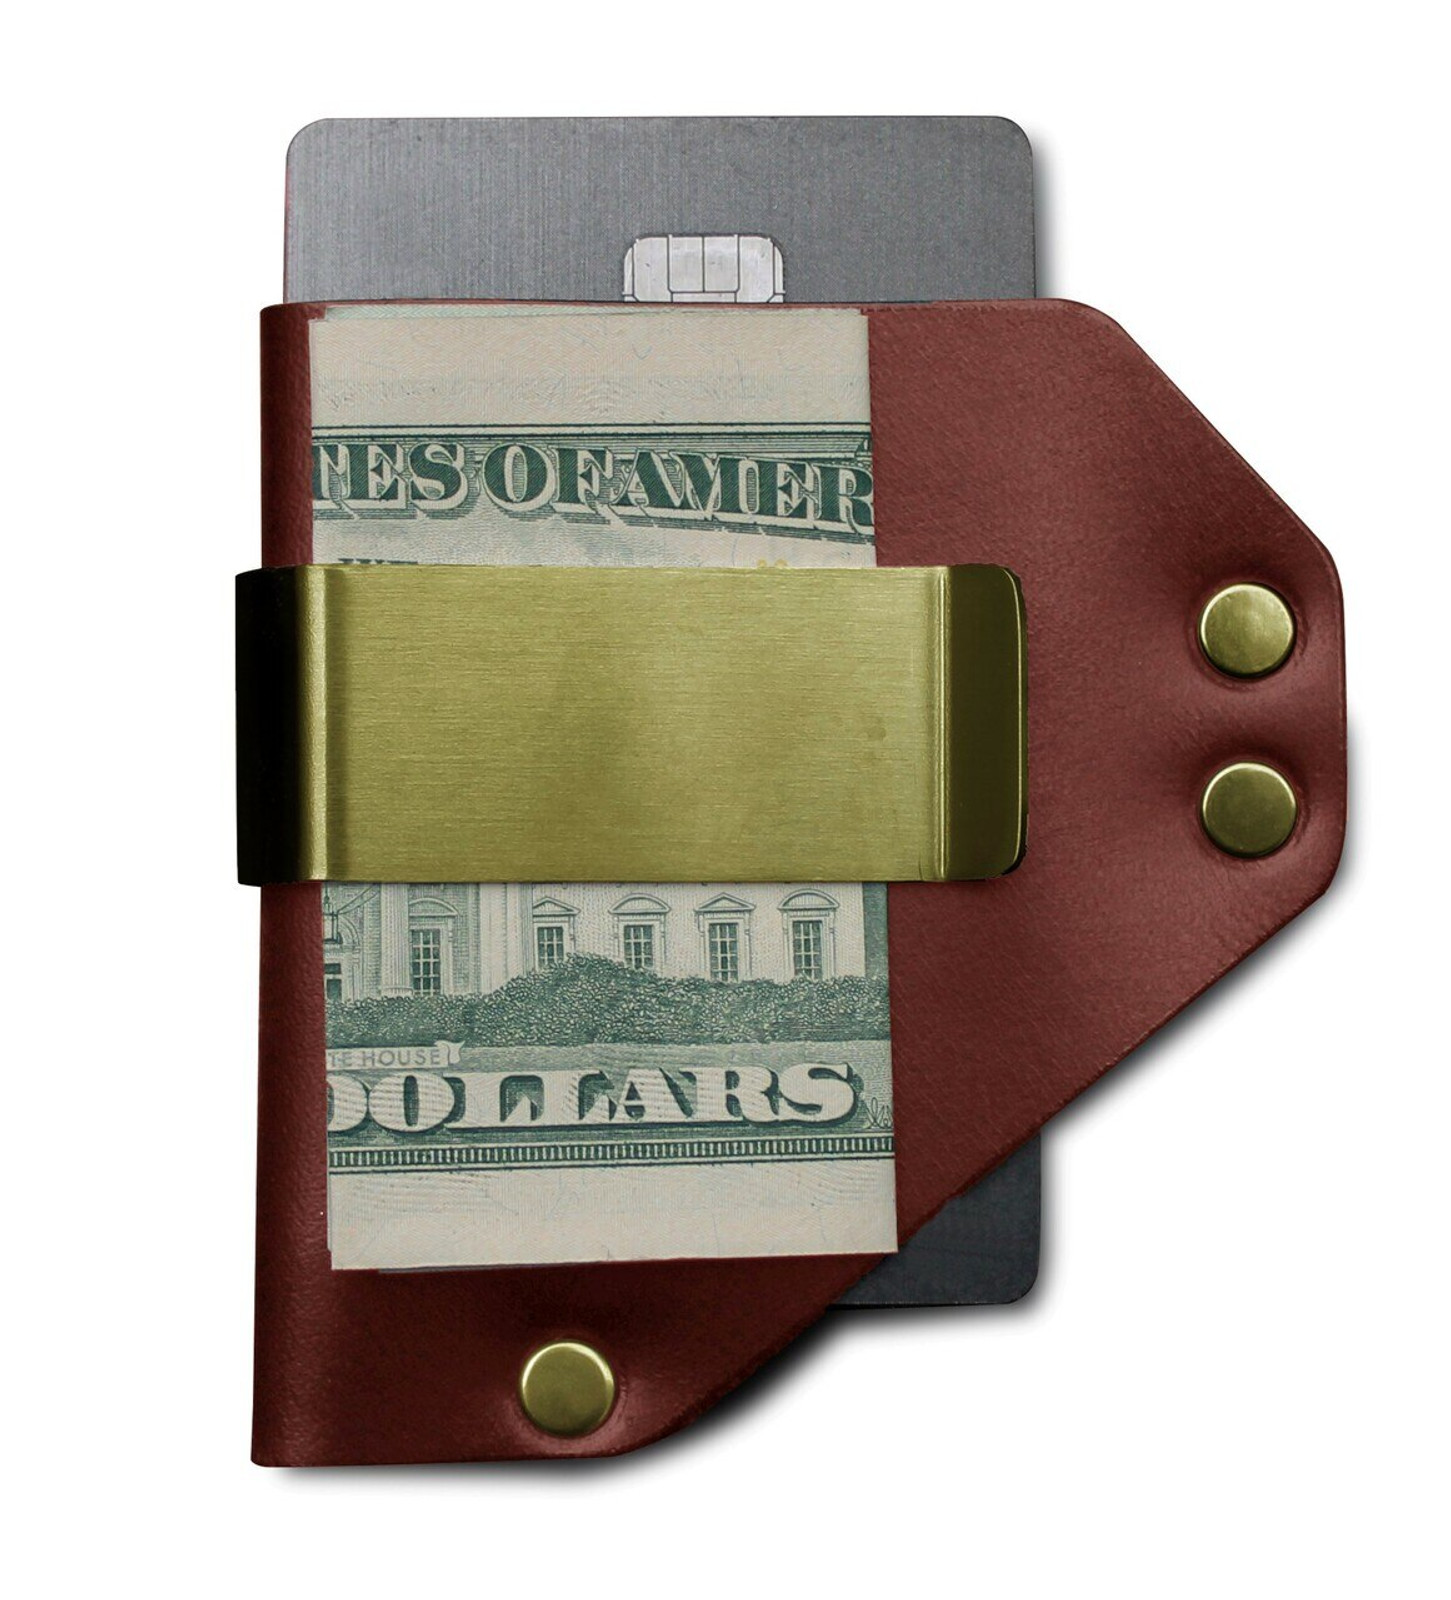 Caliber Money Clip Wallet - Slim, Front Pocket Wallet (Premium Veg-Tanned Leather) with Money Clip and RFID Blocking Credit Card Holder